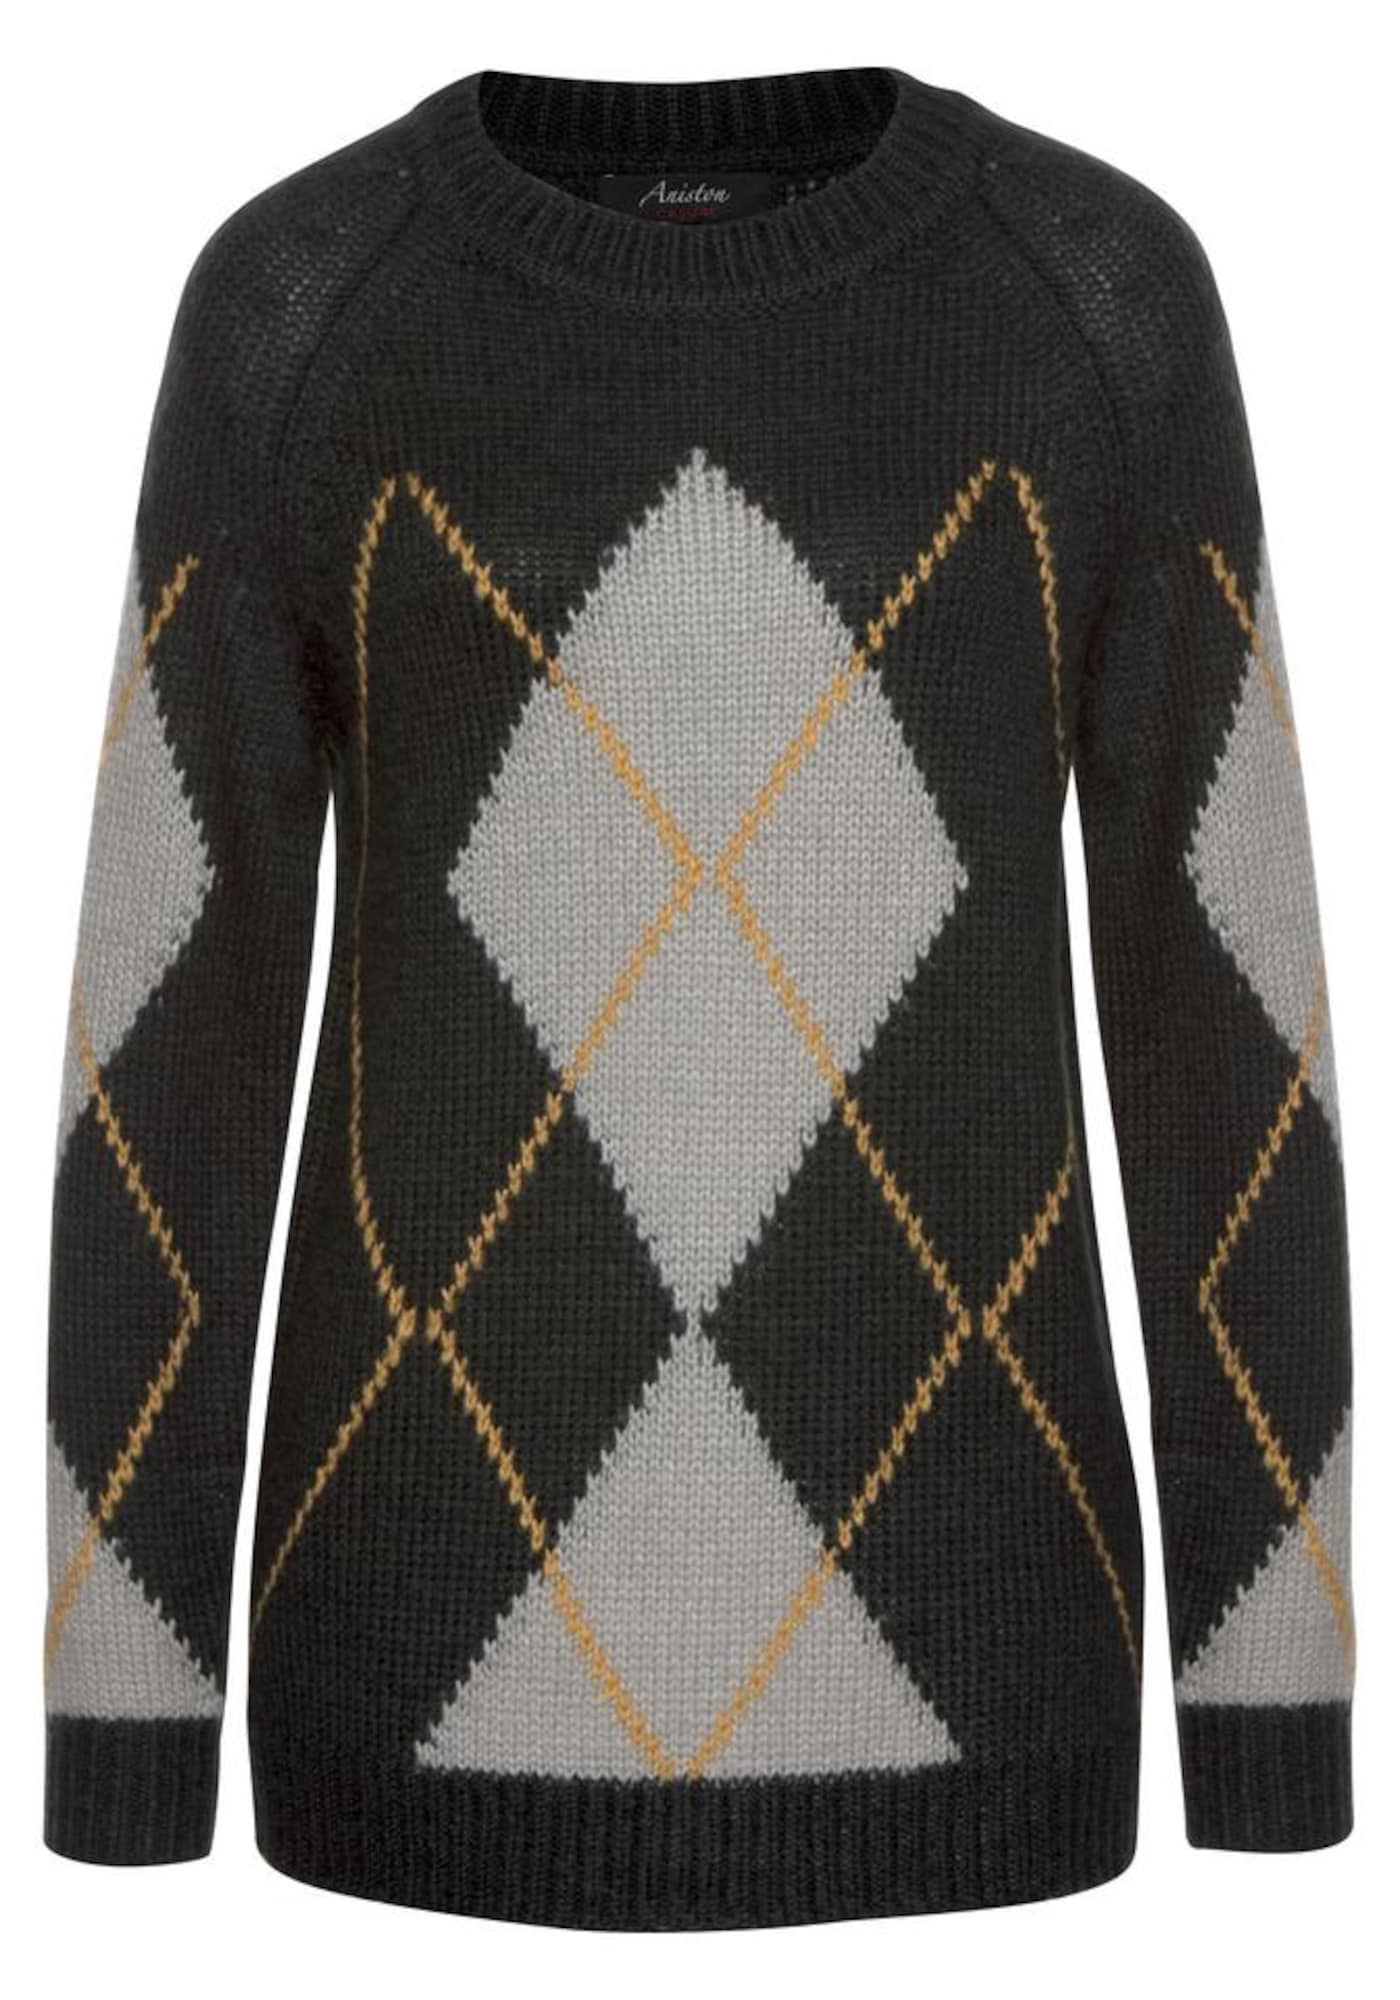 aniston casual - Pullover